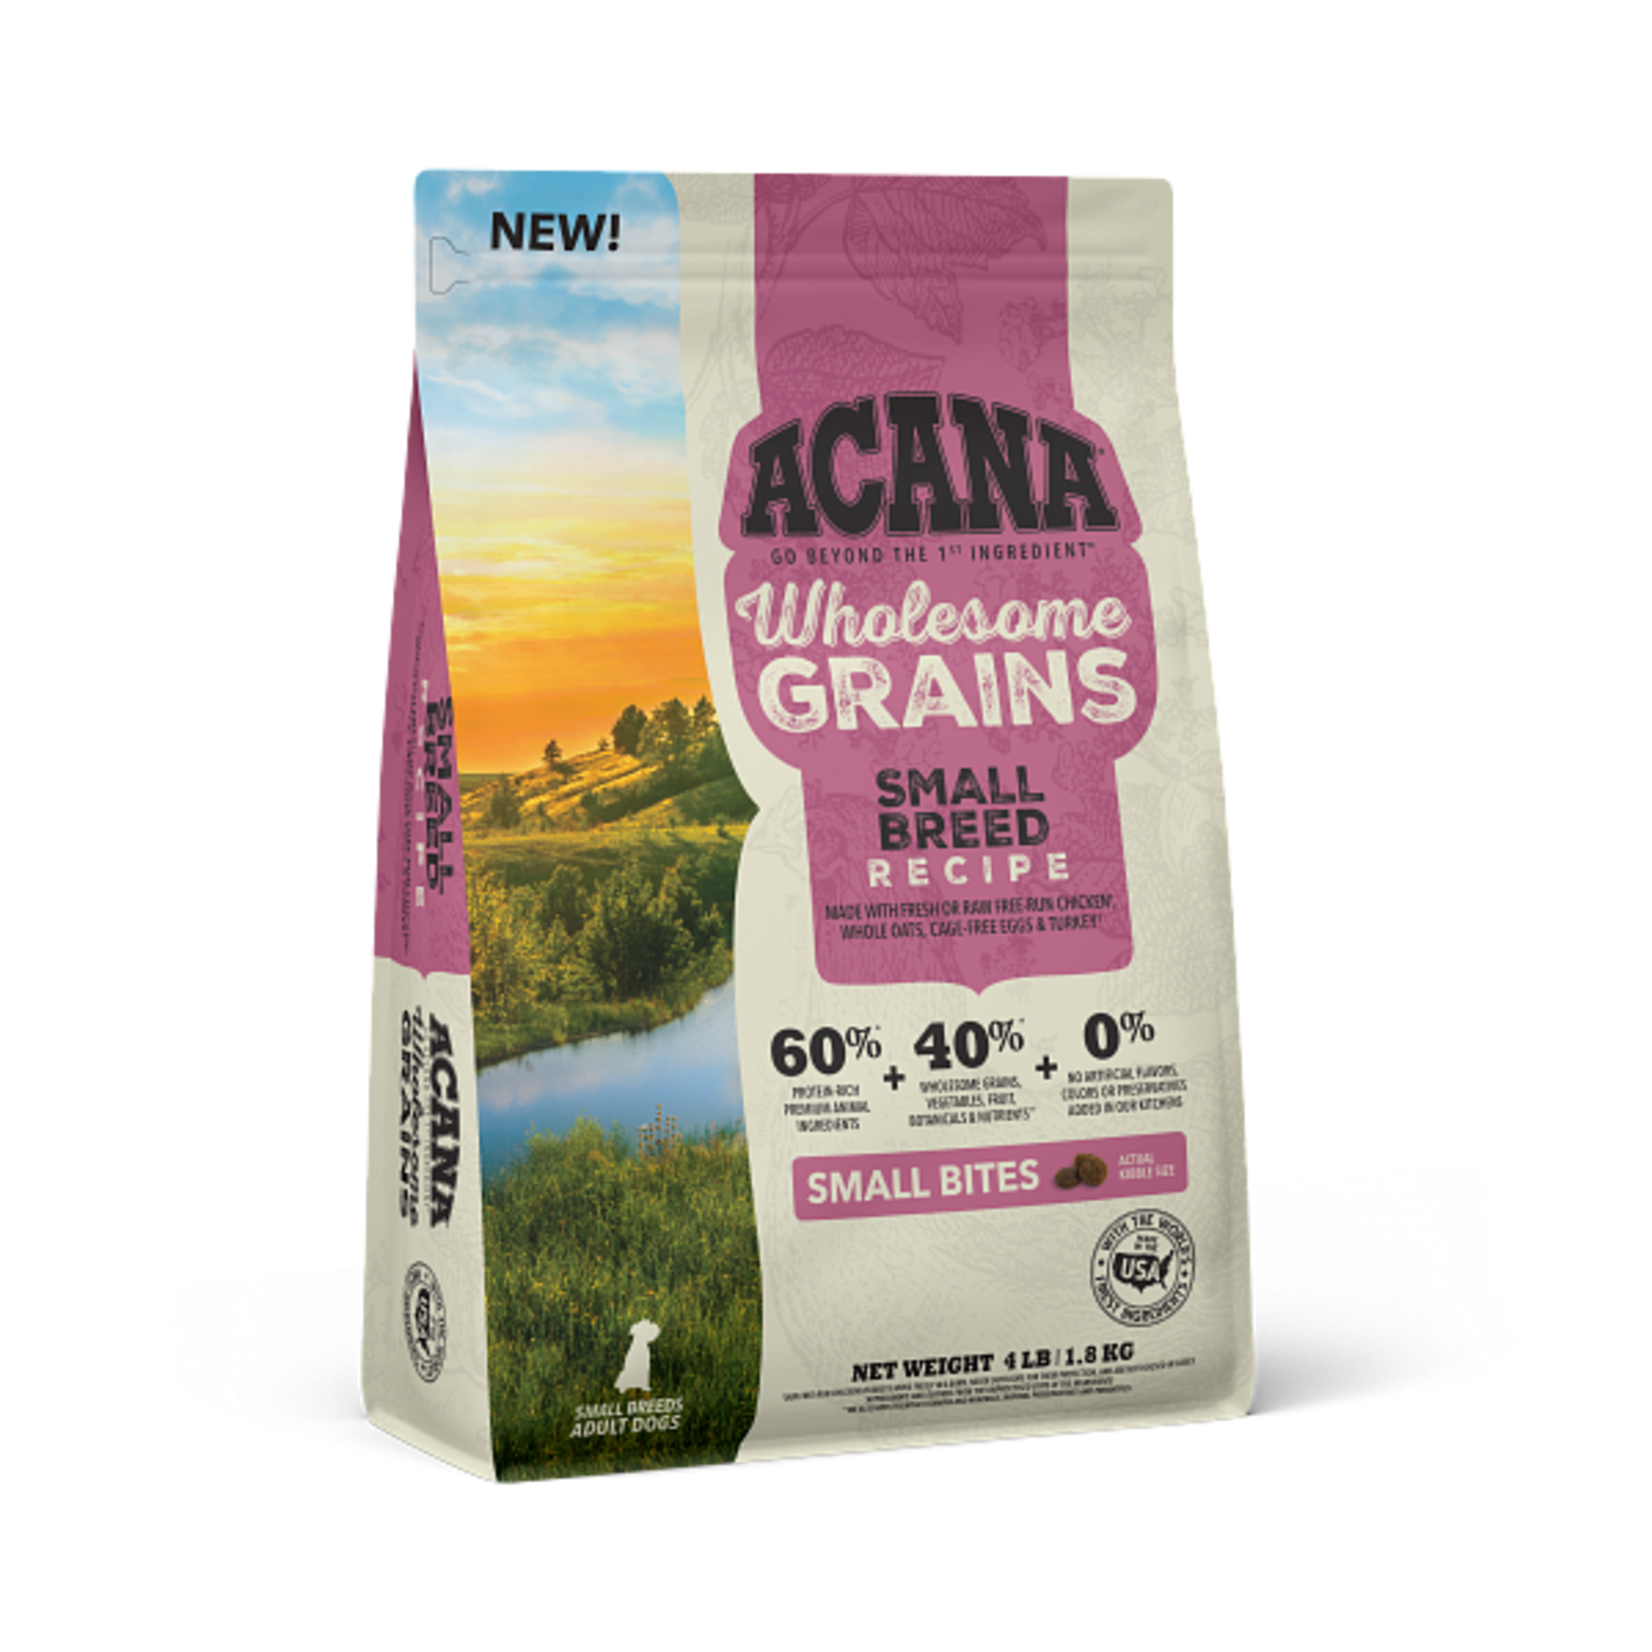 Champion Pet Foods Acana Dog  Wholesome Grains Small Breed 4#